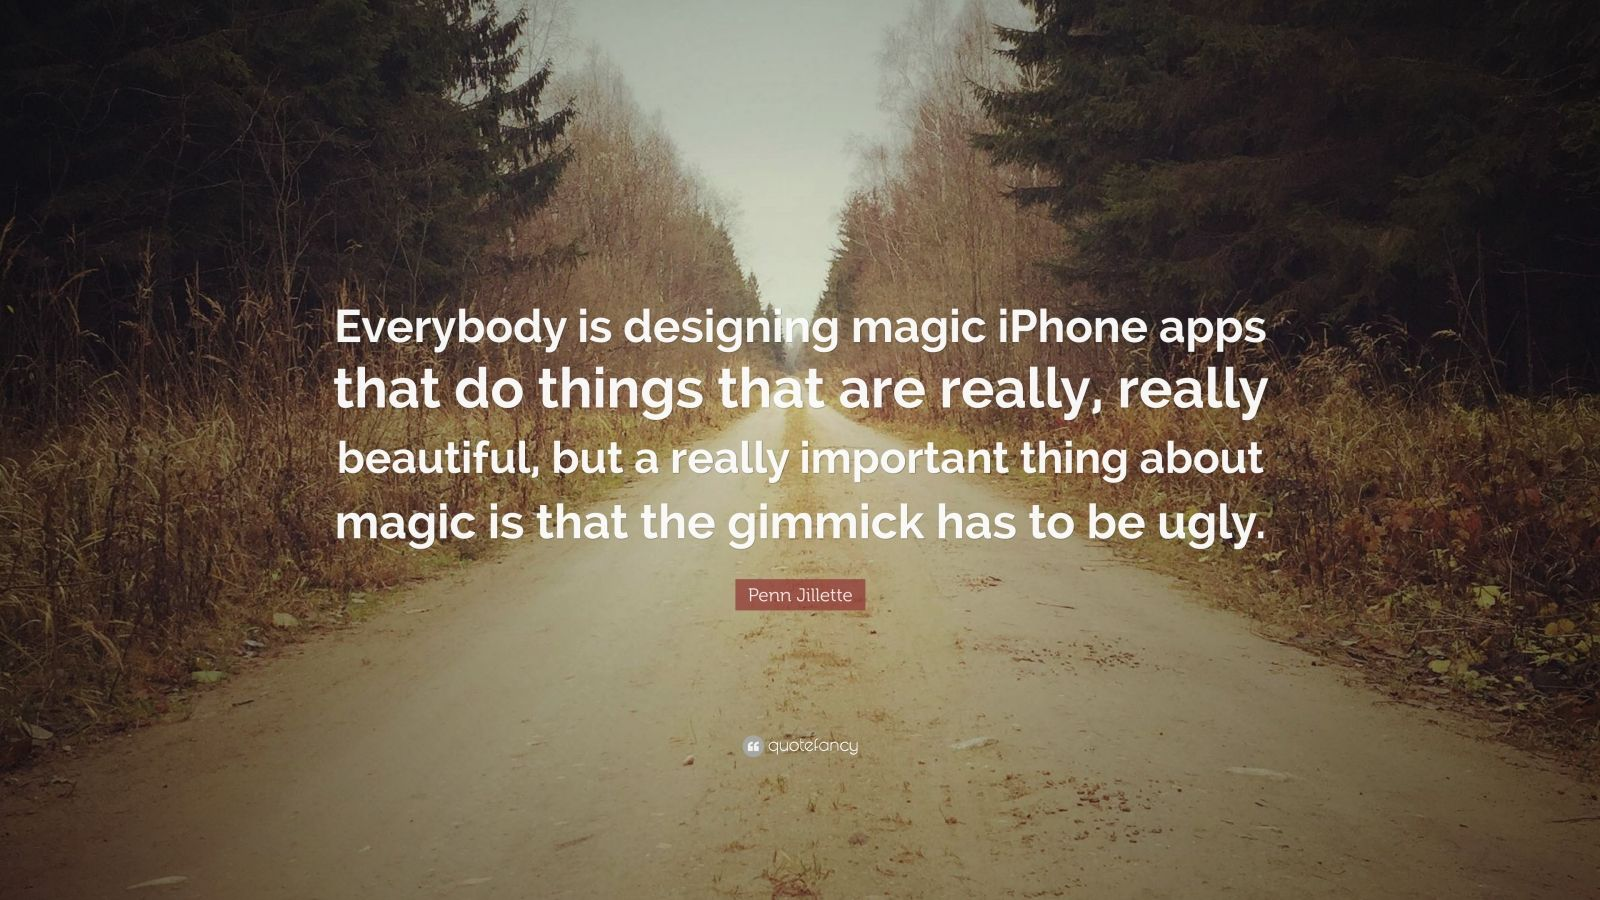 """Penn Jillette Quote: """"Everybody is designing magic iPhone apps that do things that are really, really beautiful, but a really important thing about magic is that the gimmick has to be ugly."""""""